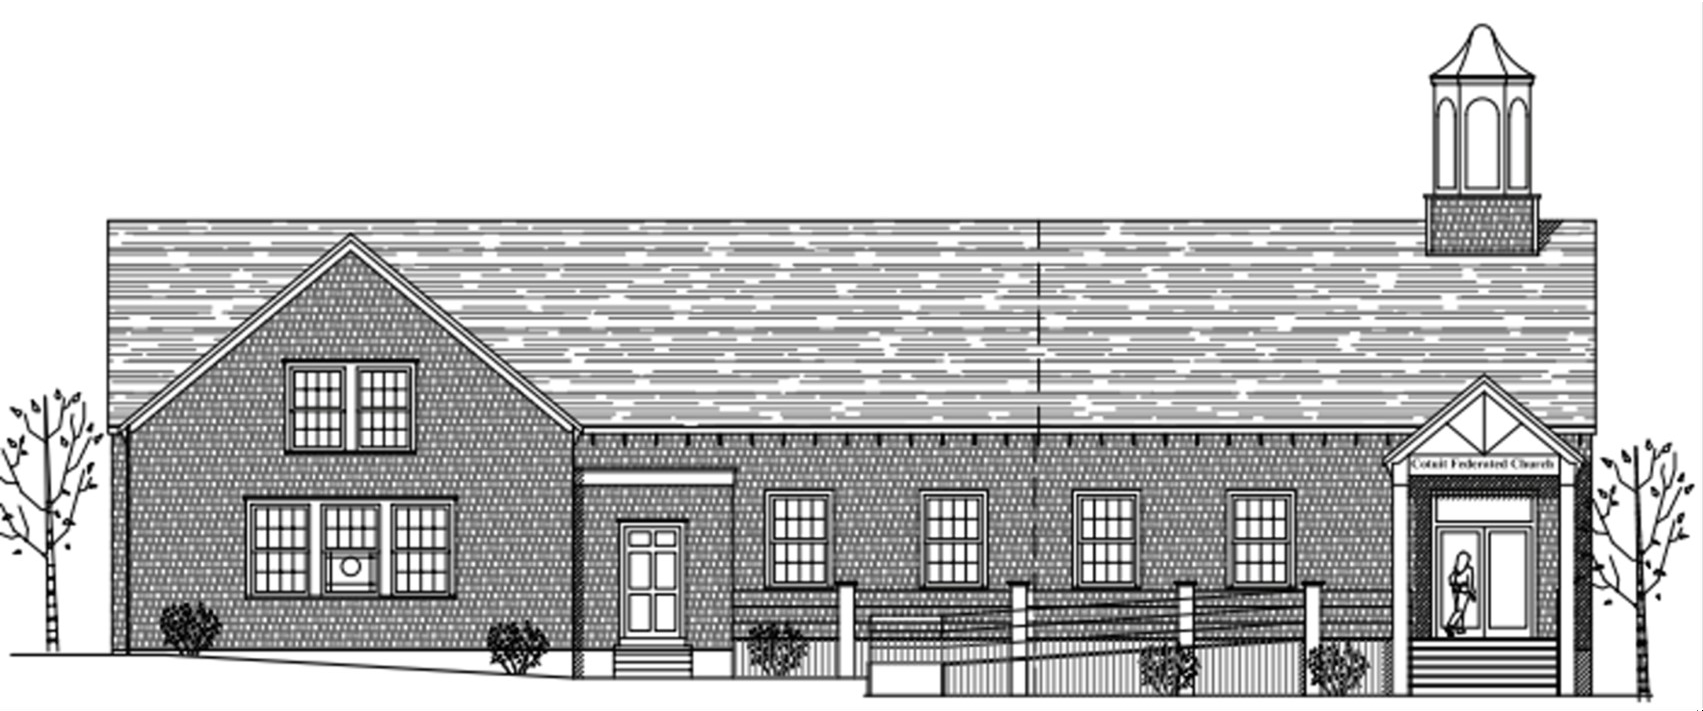 Architect's view of church expansion